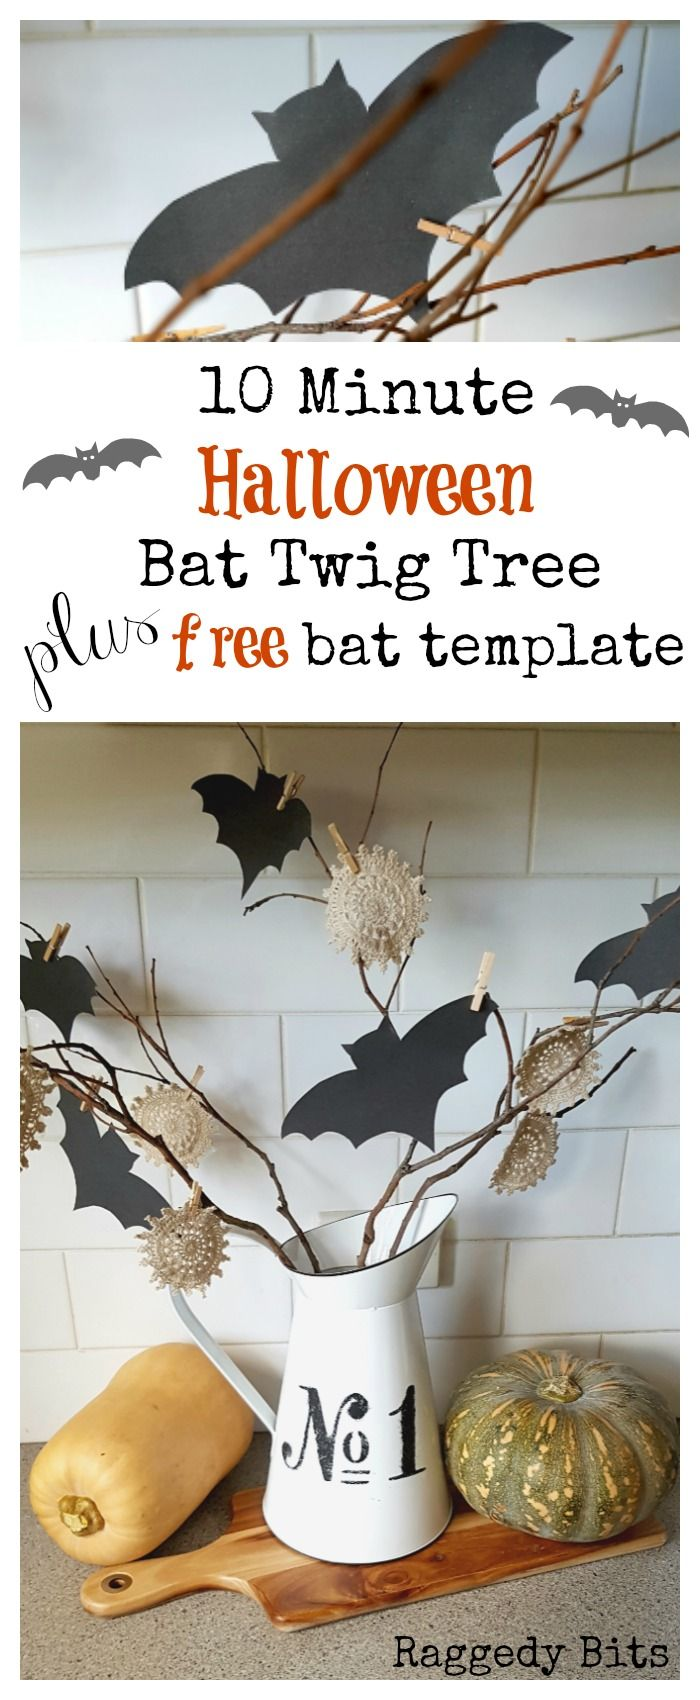 A fun 10 Minute Halloween Bat Twig Tree to add to your decorating this Halloween   Free Bat Template   www.raggedy-bits.com